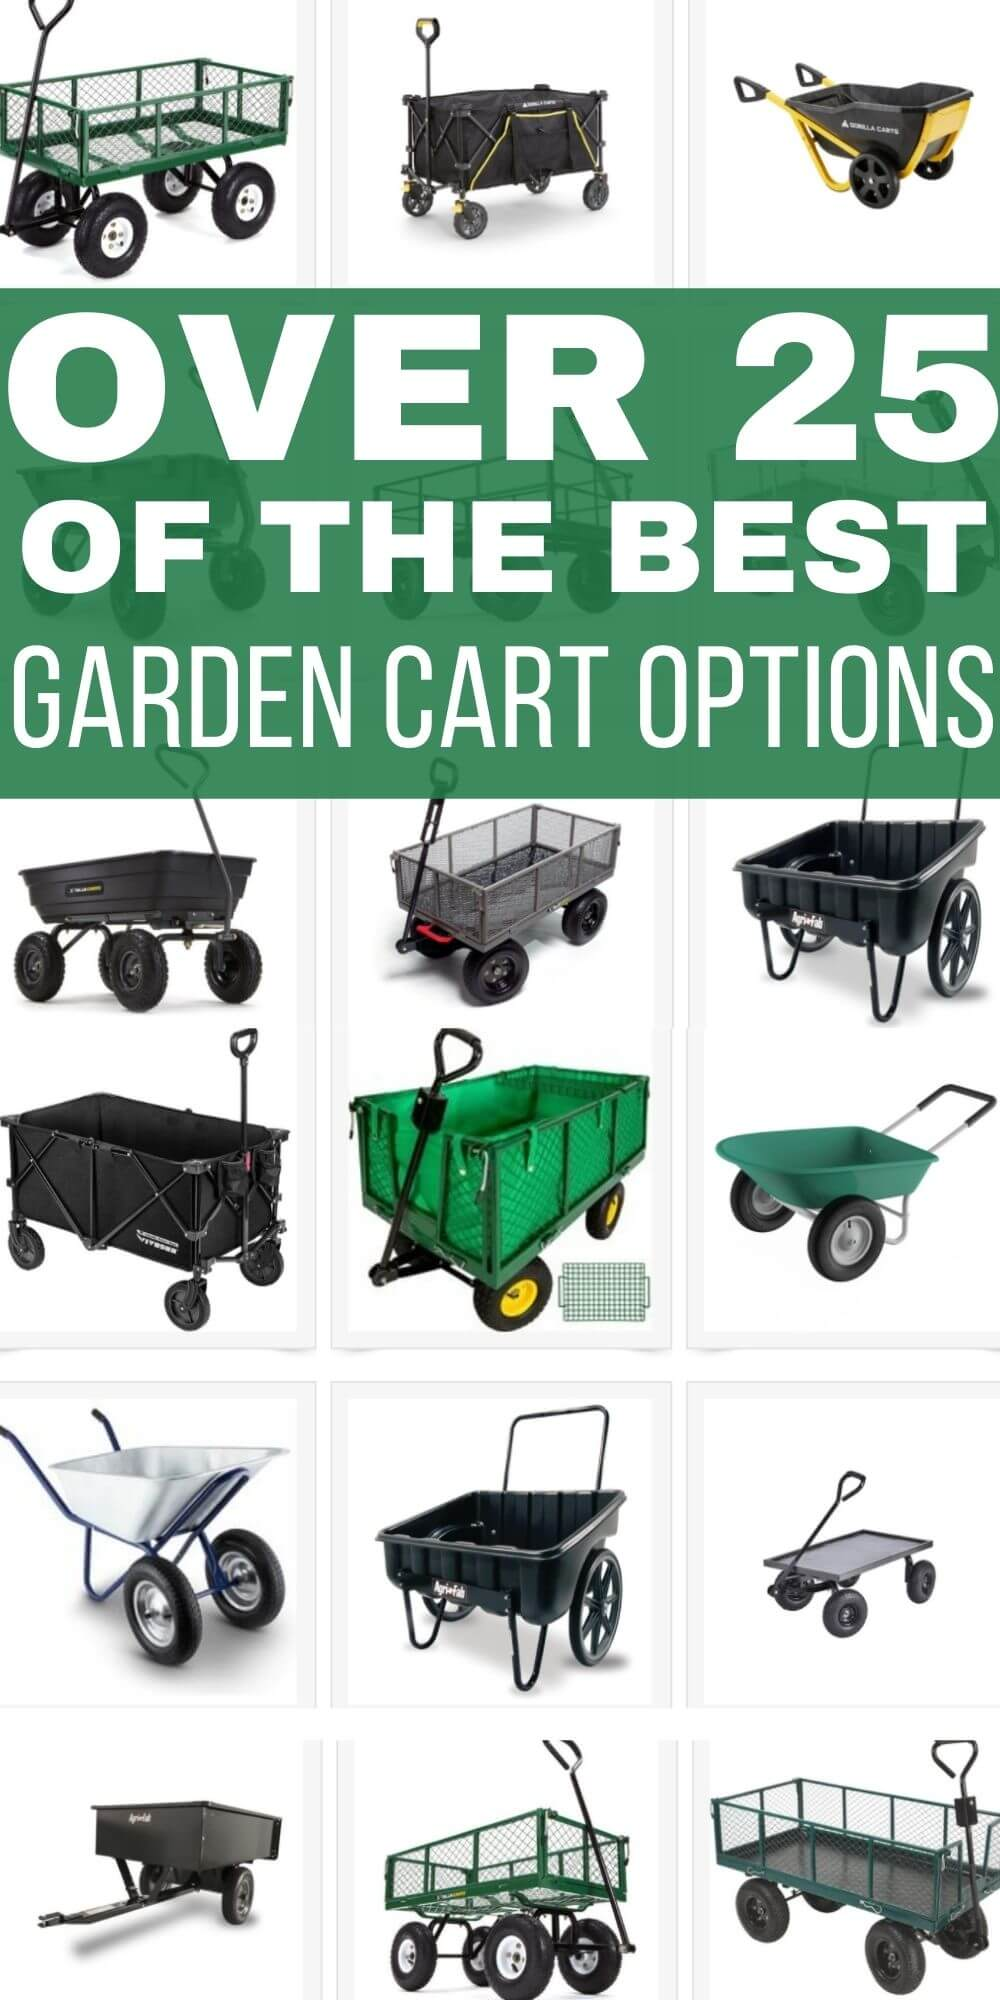 Over 25 of the Best Garden Cart Options for 2021